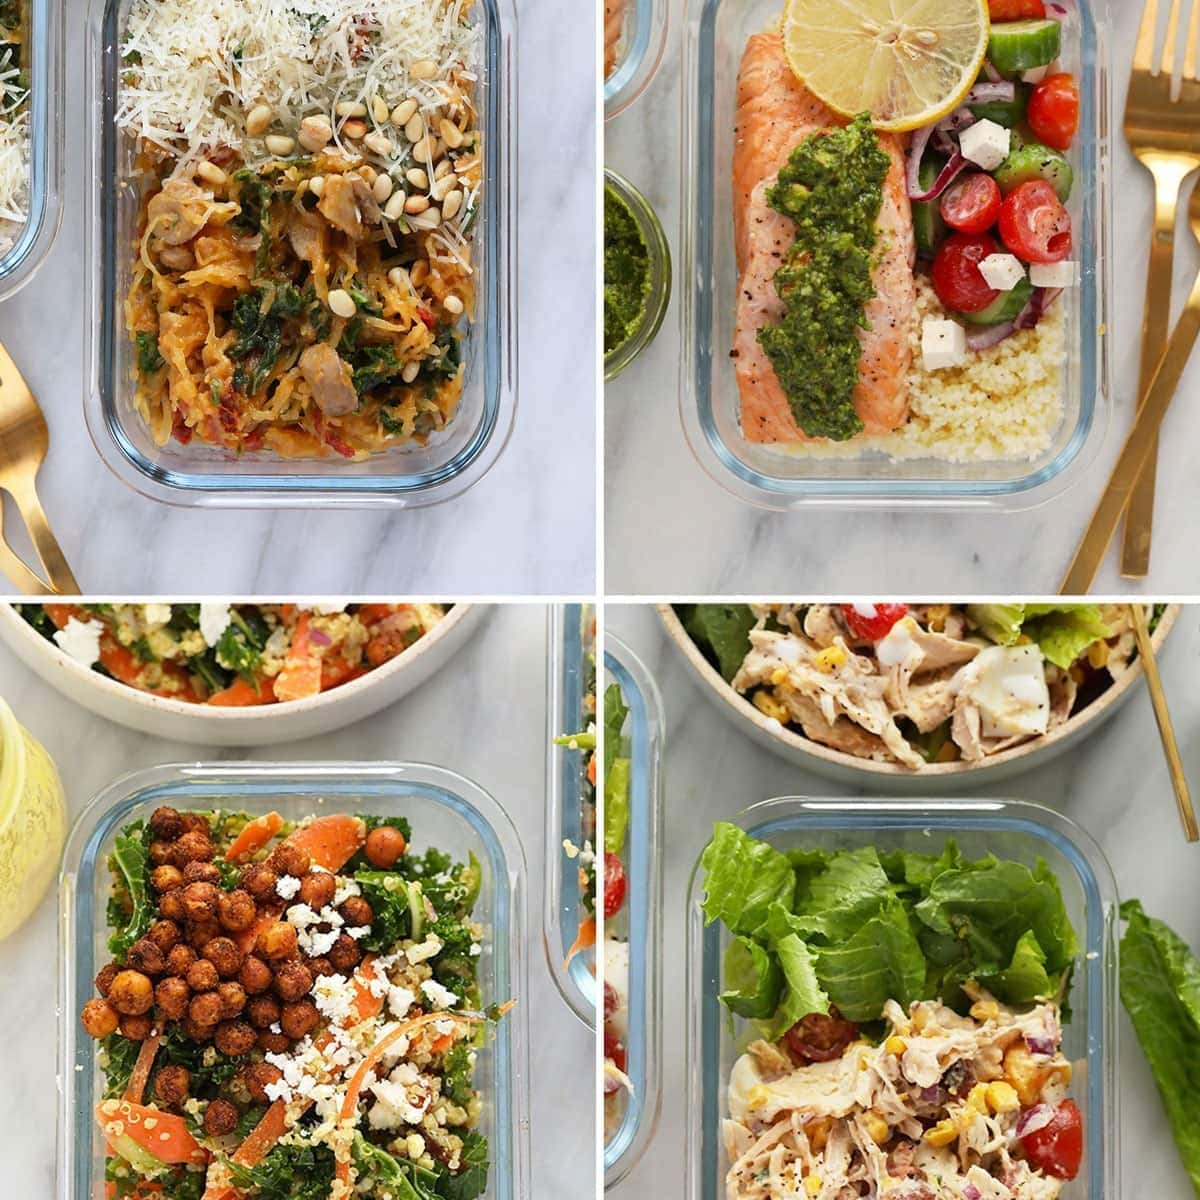 Delicious Healthy Lunch Ideas 30 Meal Prep Ideas Fit Foodie Finds